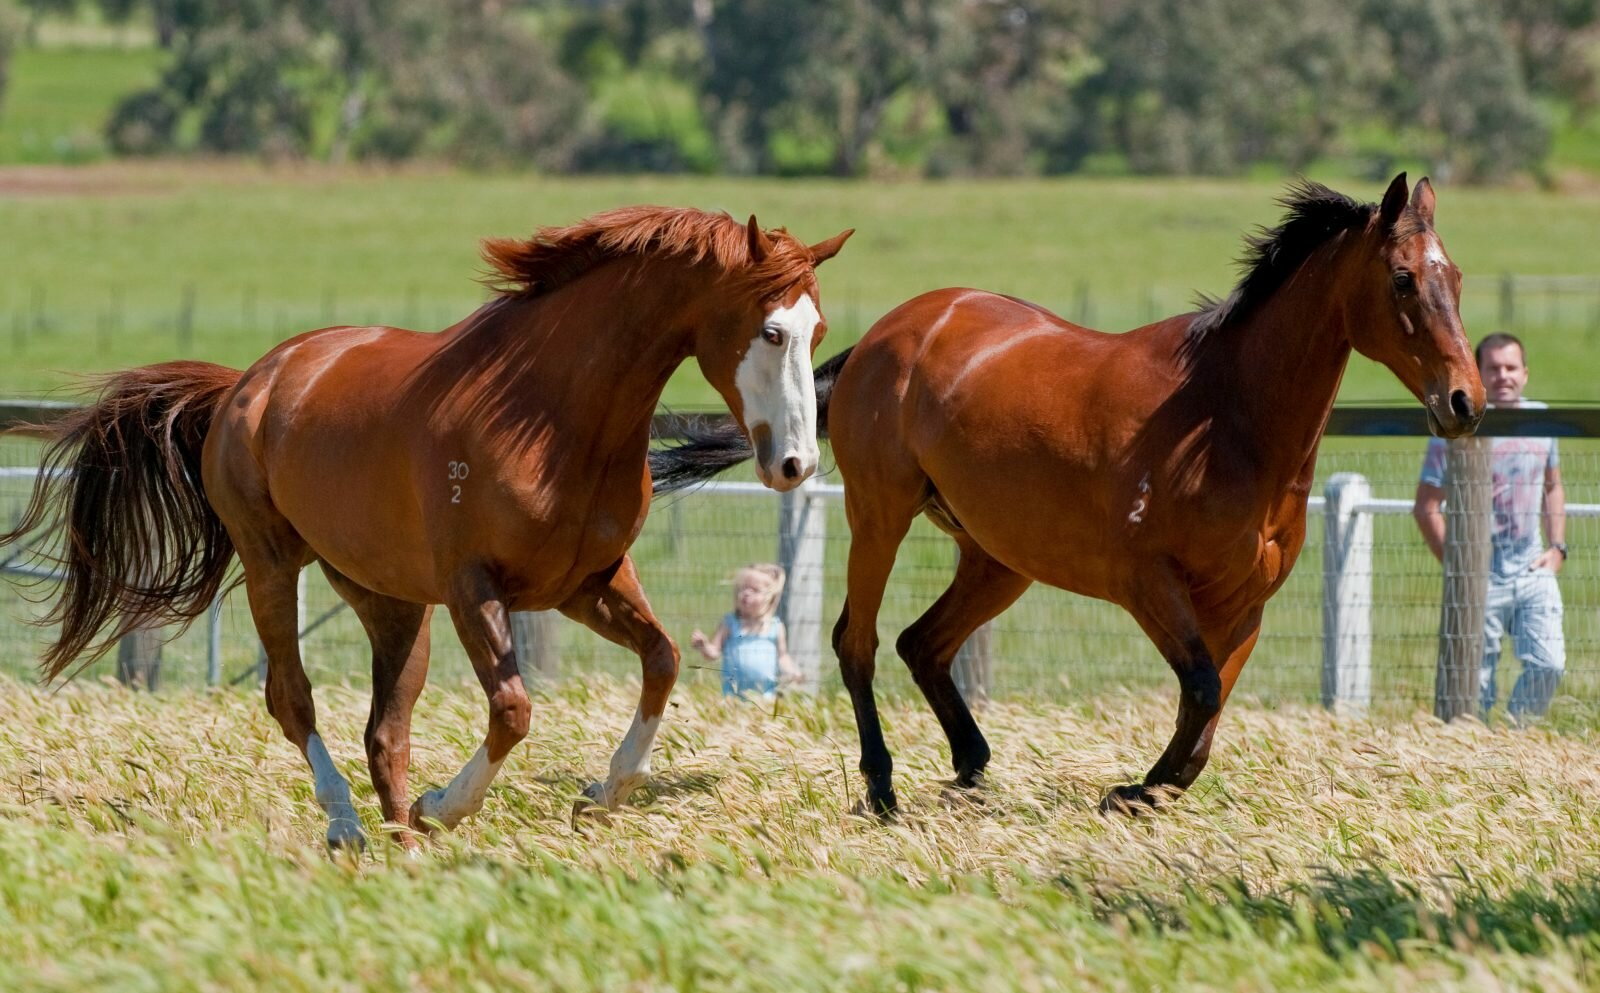 17 Great Pictures Of American Horses